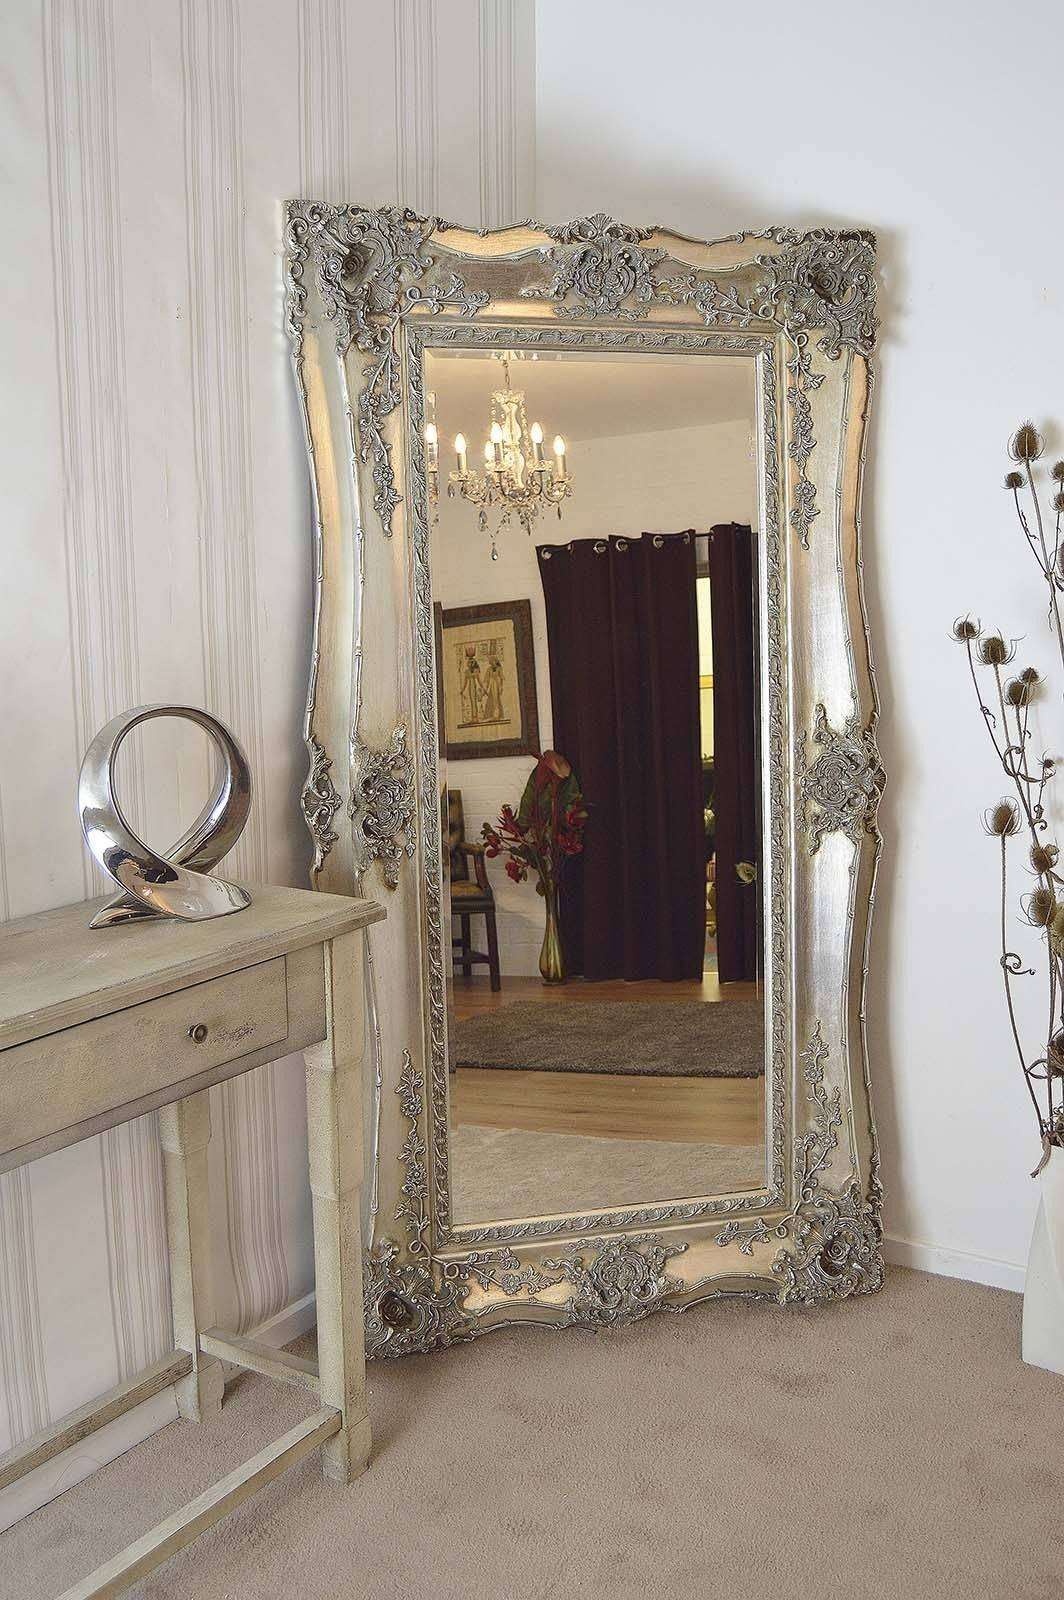 Homeware: Oval Full Length Standing Mirror | Large Floor Mirrors In Ornate Free Standing Mirrors (Photo 1 of 15)